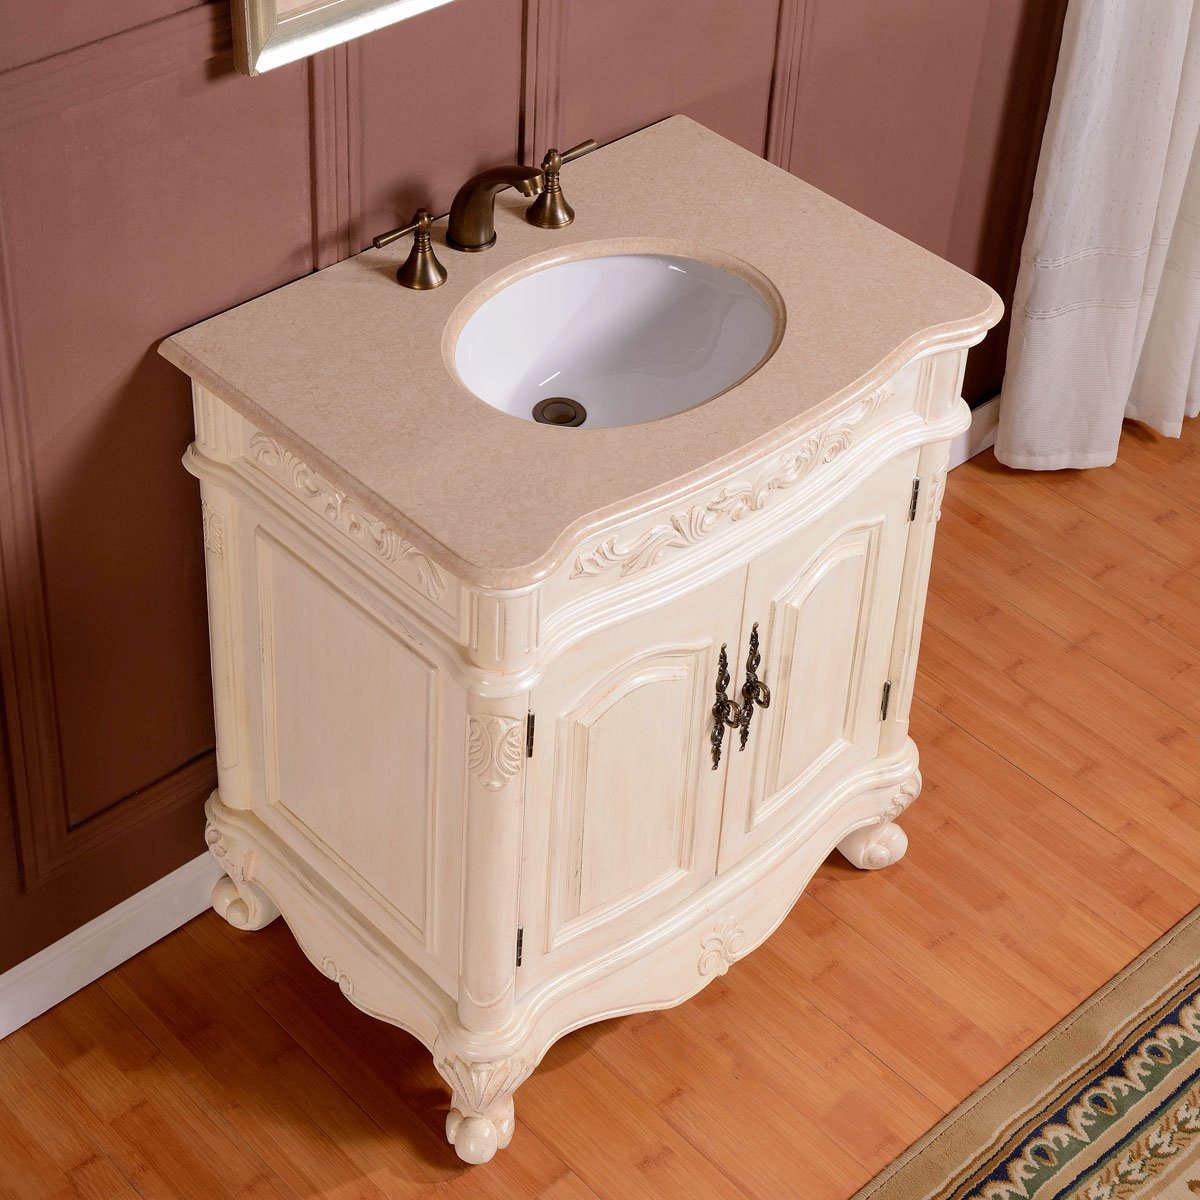 Silkroad Exclusive Marble Stone Top Single Sink Bathroom Vanity with White Oak Finish Cabinet, 32-Inch 1